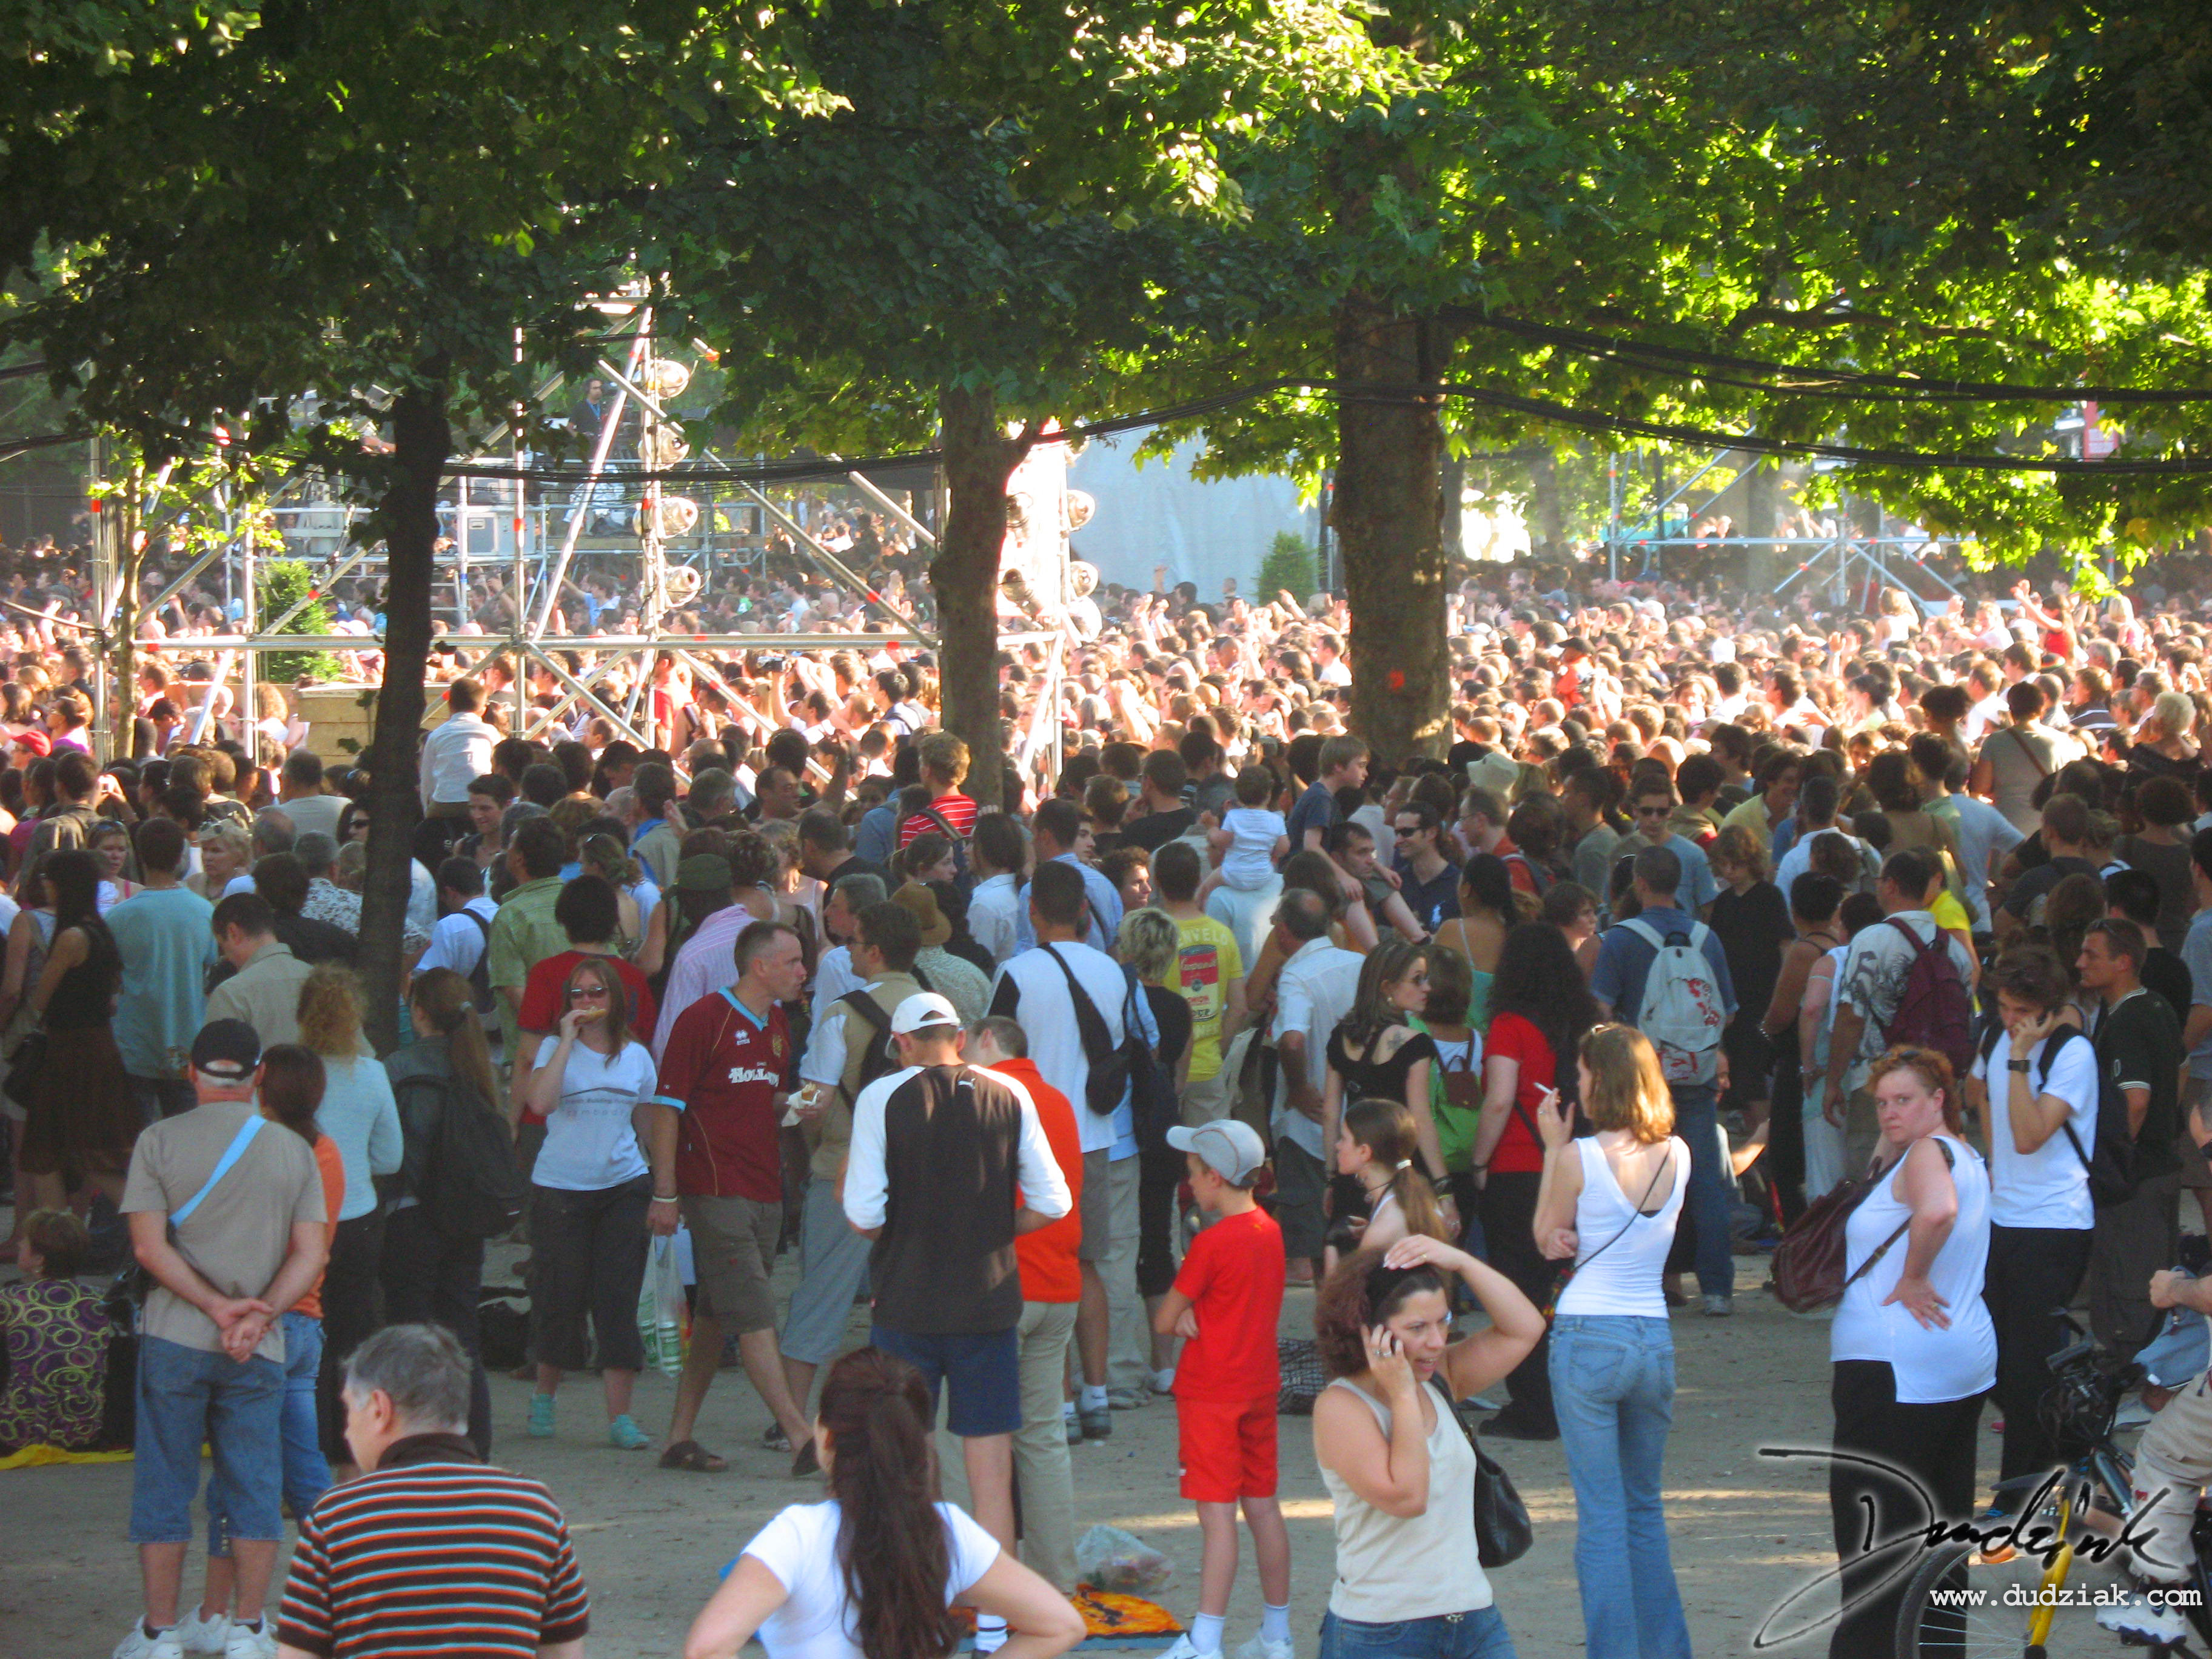 Quatorze Juillet,  Bastille Day,  Champ de Mars,  France,  Paris